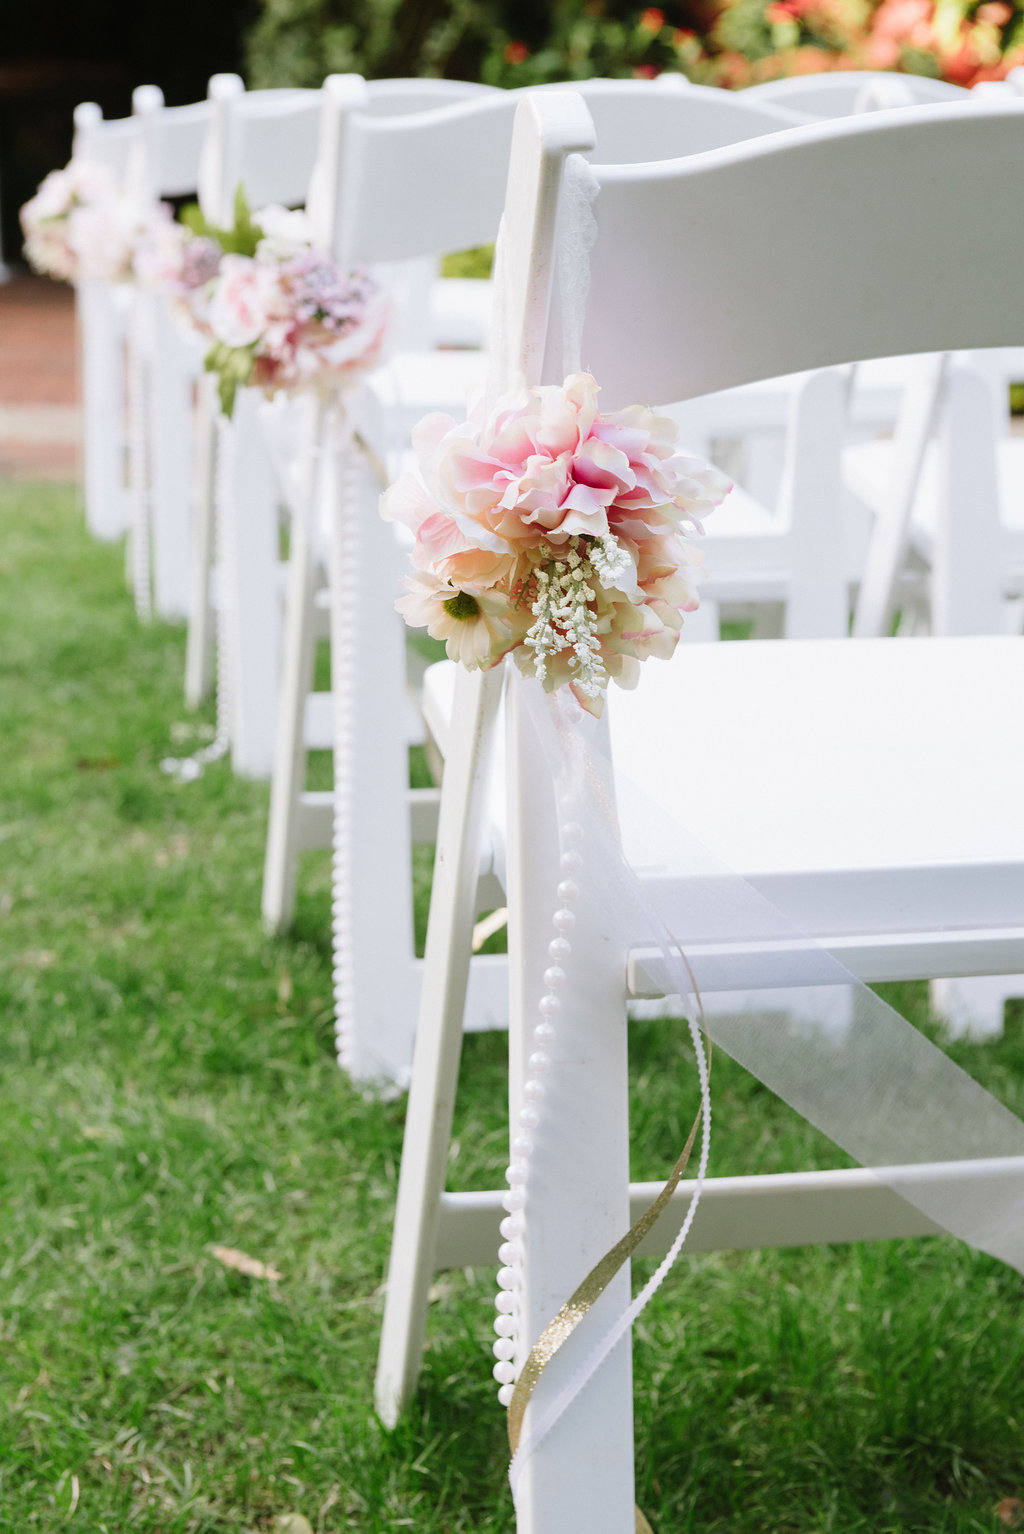 Outdoor Garden Wedding Ceremony Decor with White Folding Chairs with Pink and White Flowers, Pearl Beads, and Gold Ribbon